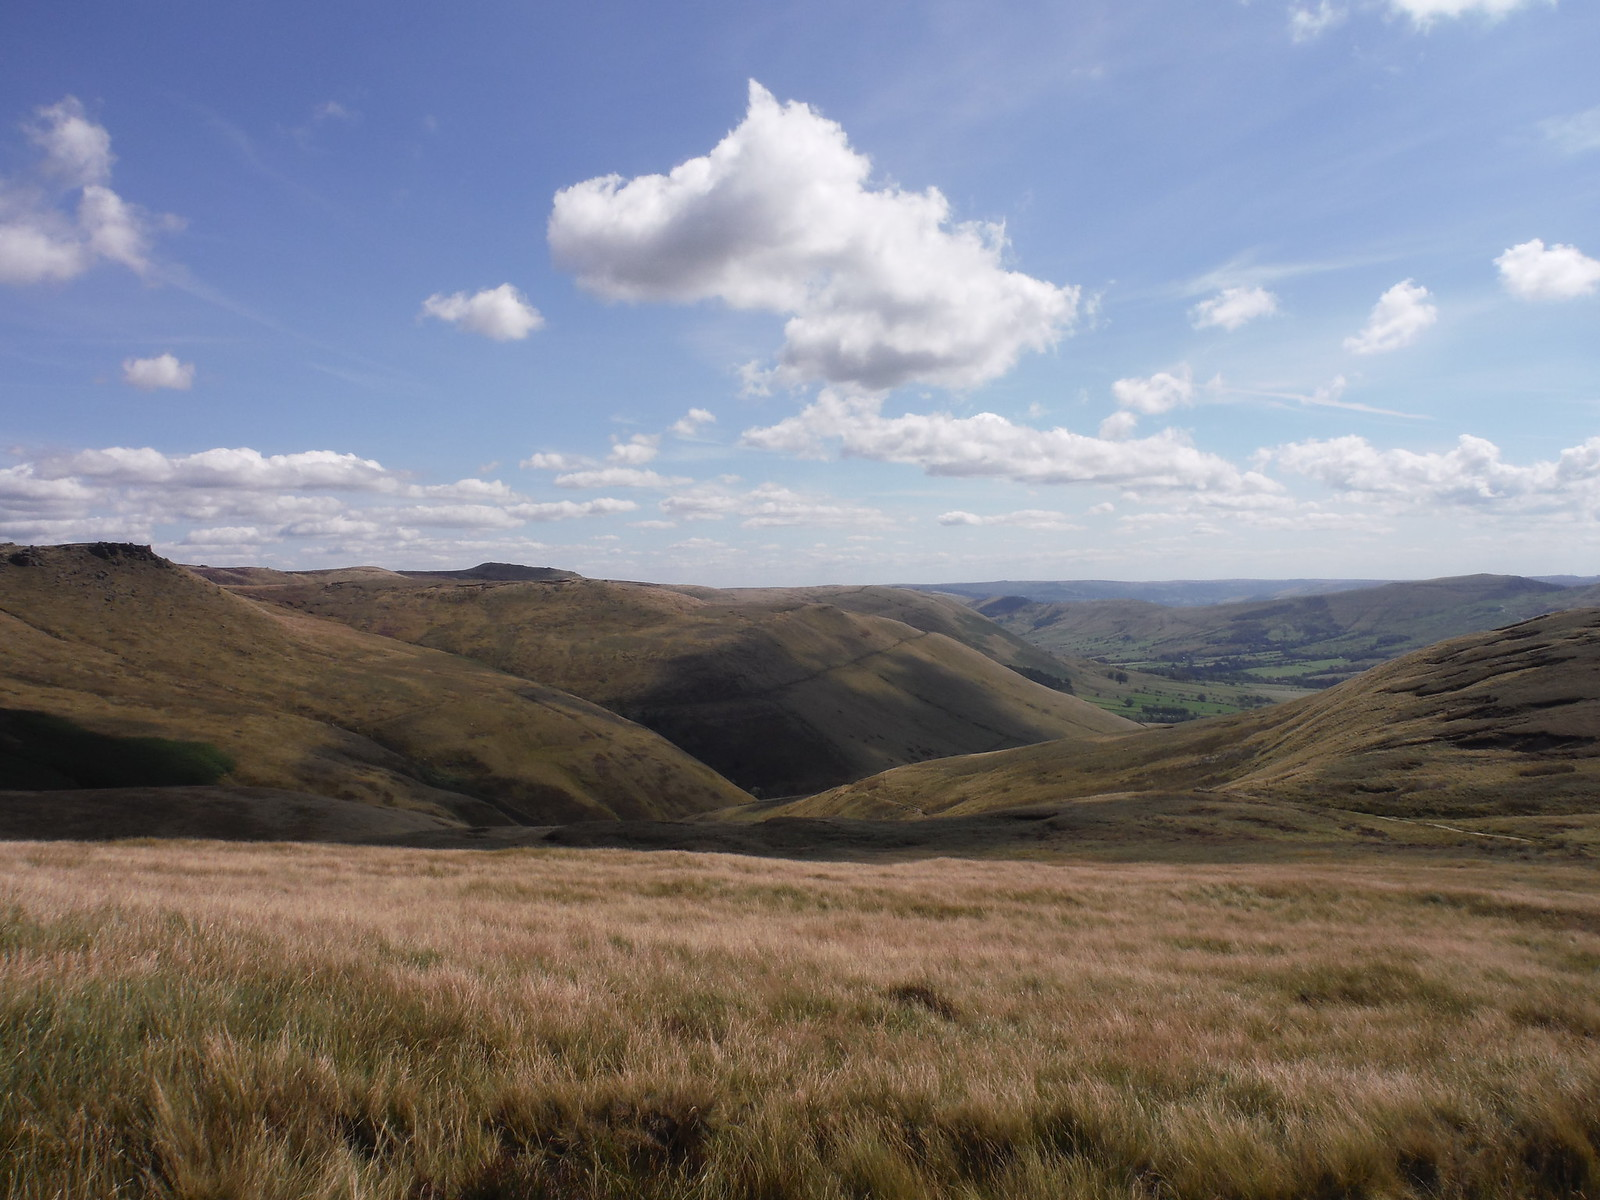 Grindslow Knoll and Vale of Edale, from Swine's Back SWC Walk 303 - Edale Circular (via Kinder Scout and Mam Tor)